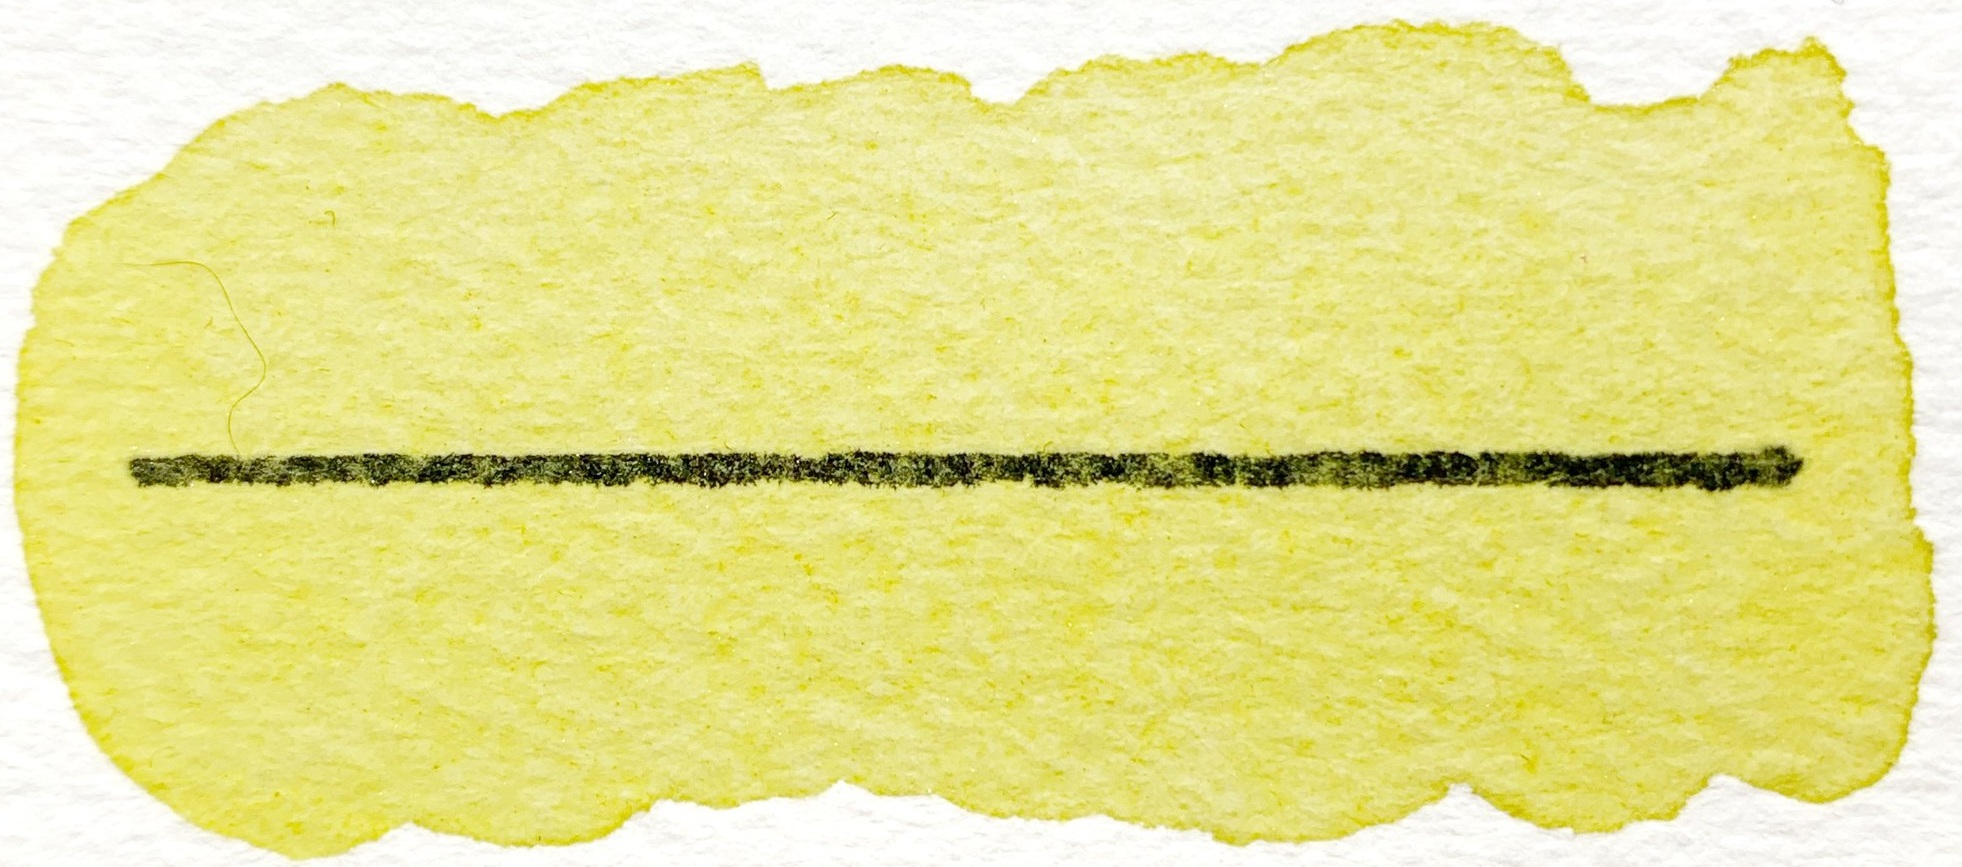 Sprout Yellow - PY74, semiopaque, good lightfastness, moderately staining